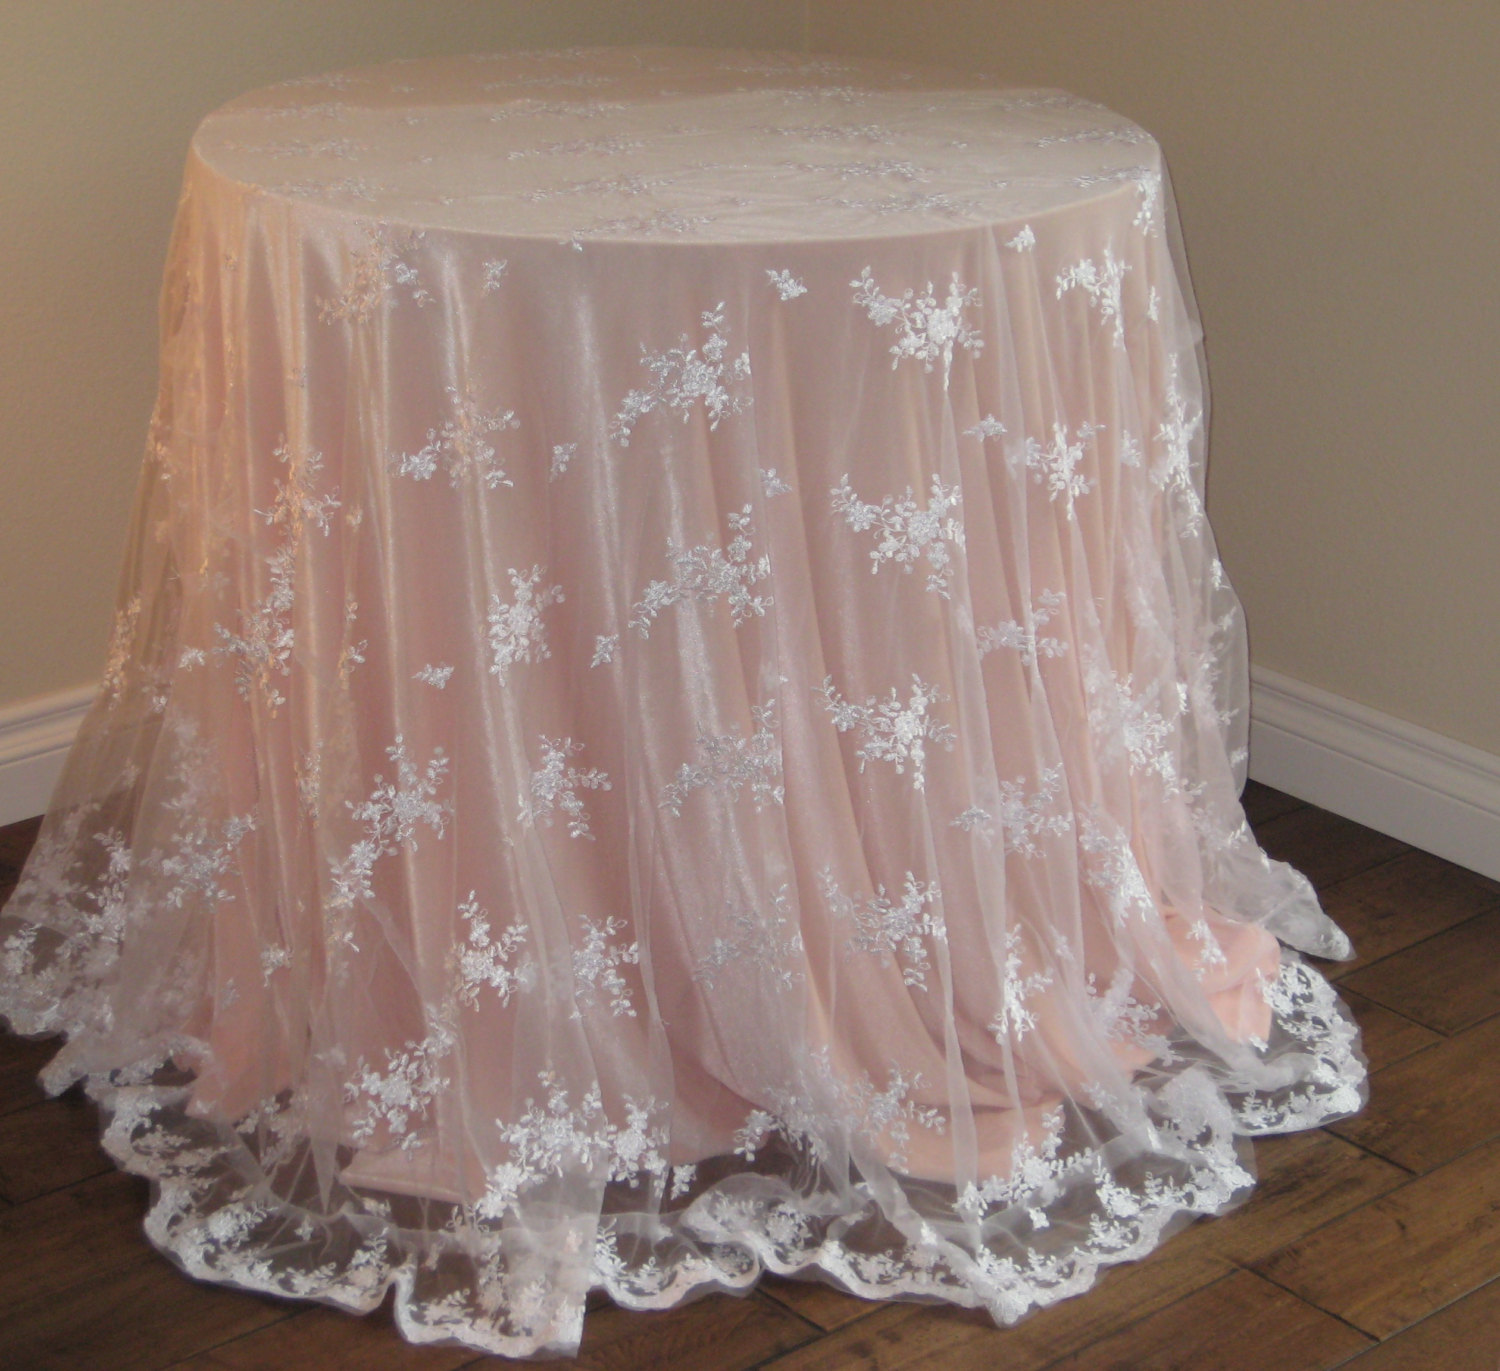 Cheap Table Linens Online Get Cheap Wedding Overlays  : oval table cloths lace tablecloths oversized tablecloths burlap and lace tablecloth lace tablecloth rentals lace tablecloth rental vintage lace tablecloths wedding cheap tablecloth cotton l from www.lagenstore.com size 1500 x 1371 jpeg 357kB